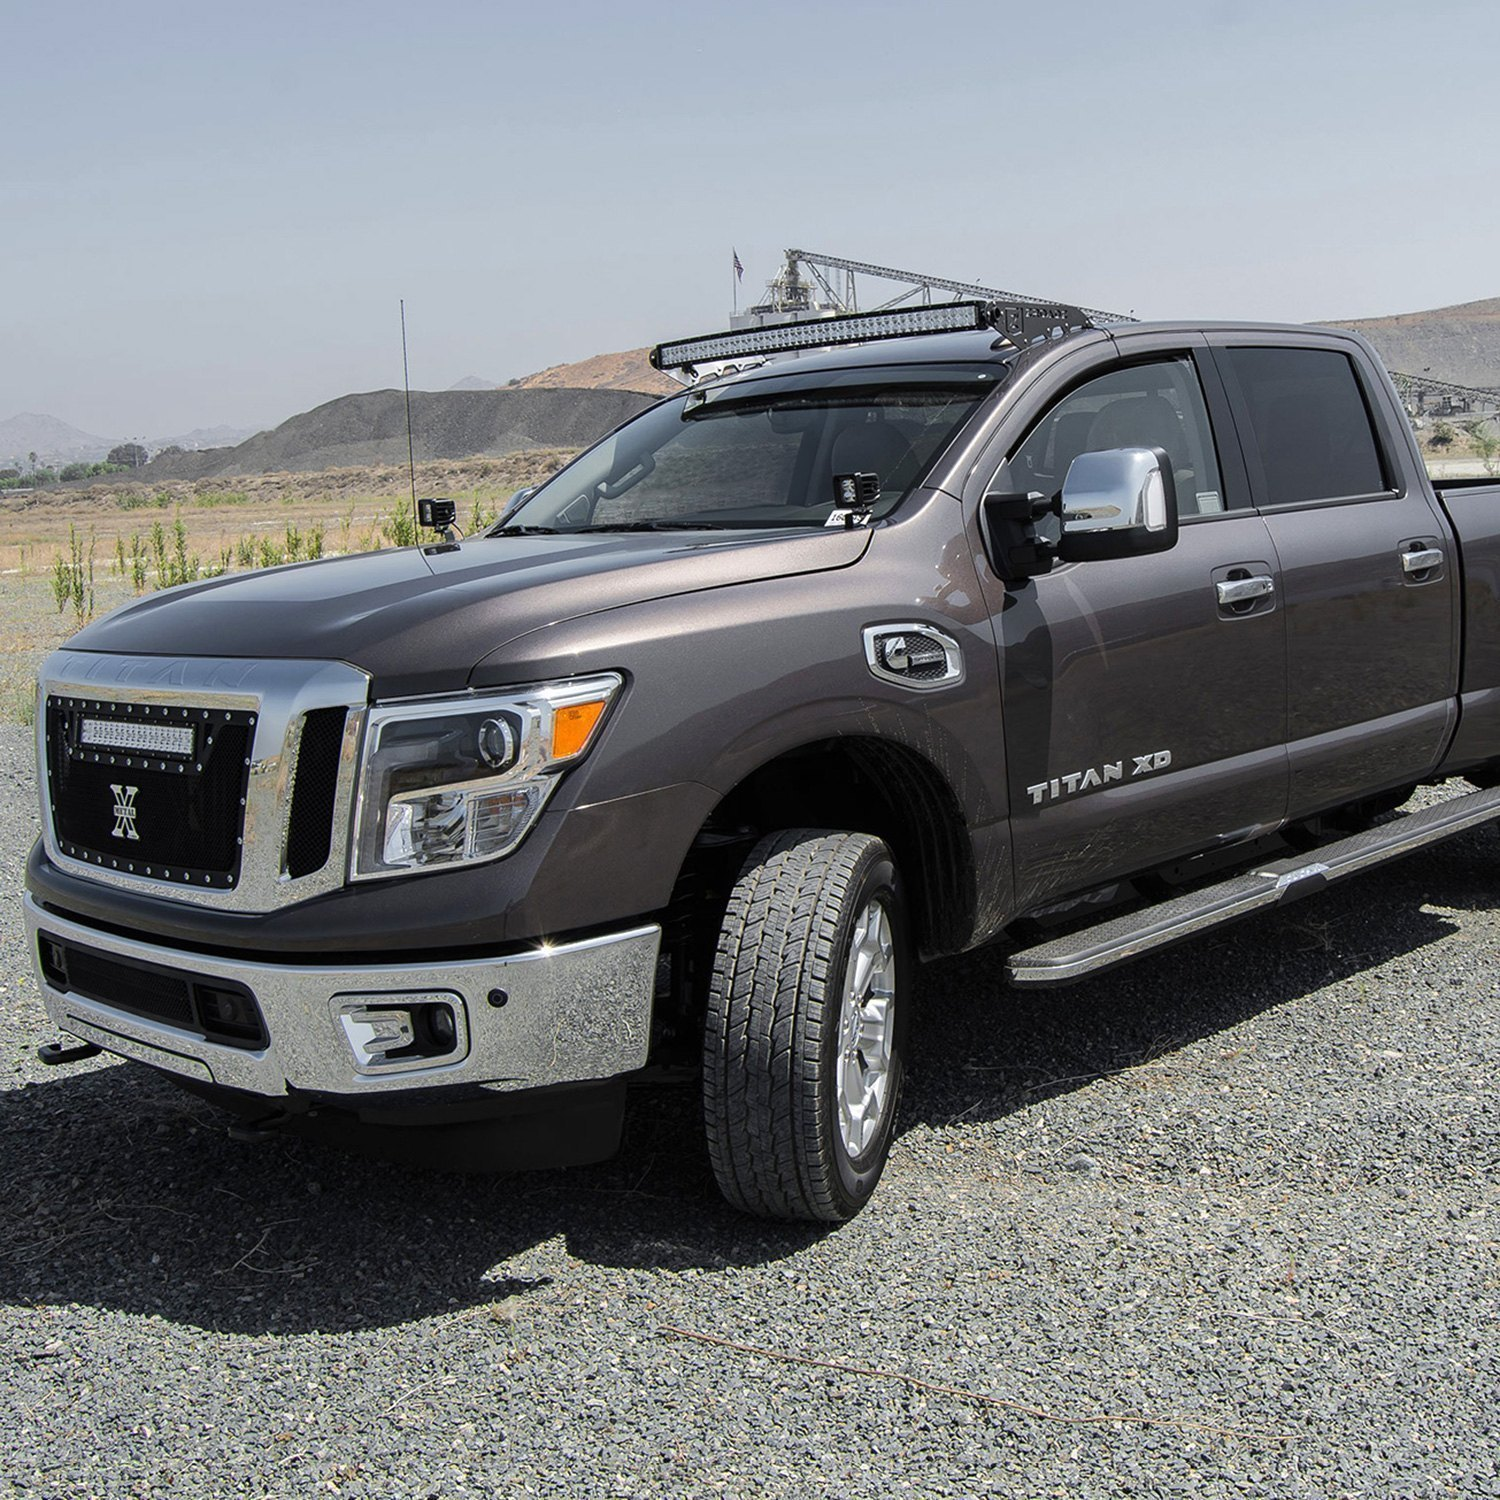 Zroadz nissan titan xd 2016 2017 roof mounted 50 288w curved roof curved dual row led light bar audiocablefo